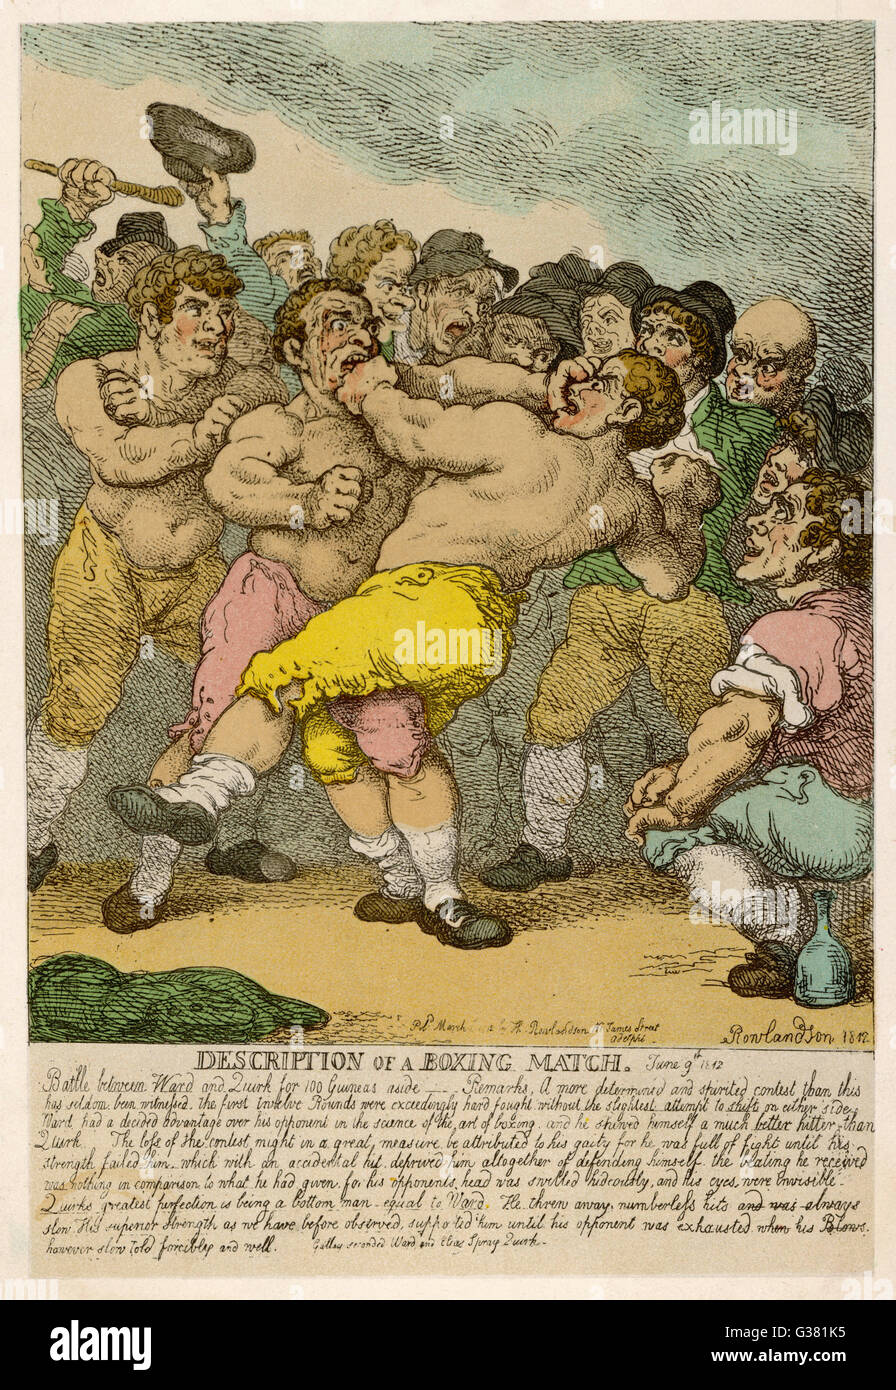 Description of a boxing match  between Ward and Quirk         Date: 1812 - Stock Image